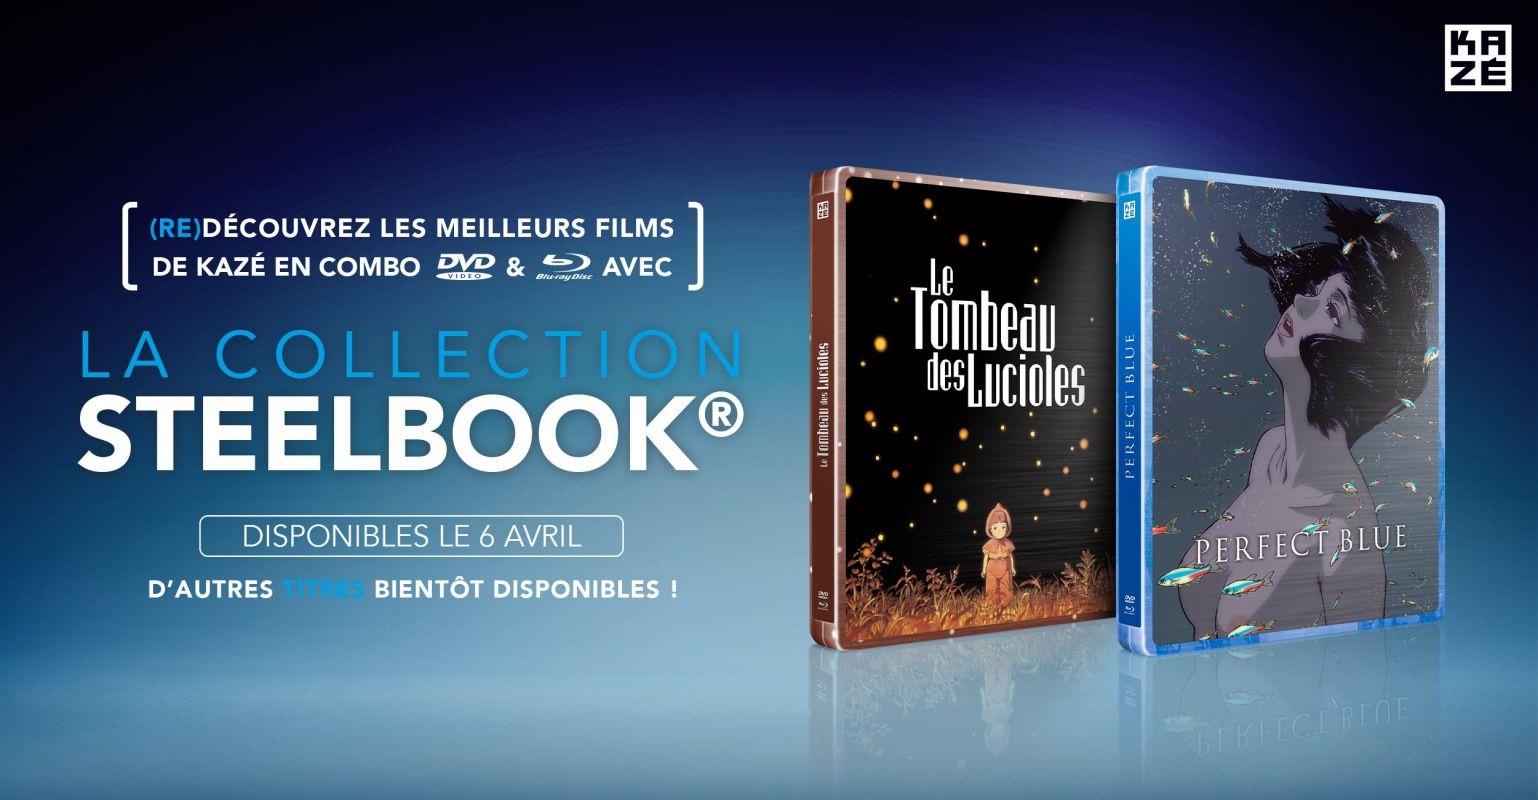 Kazé lance une nouvelle collection steelbook !